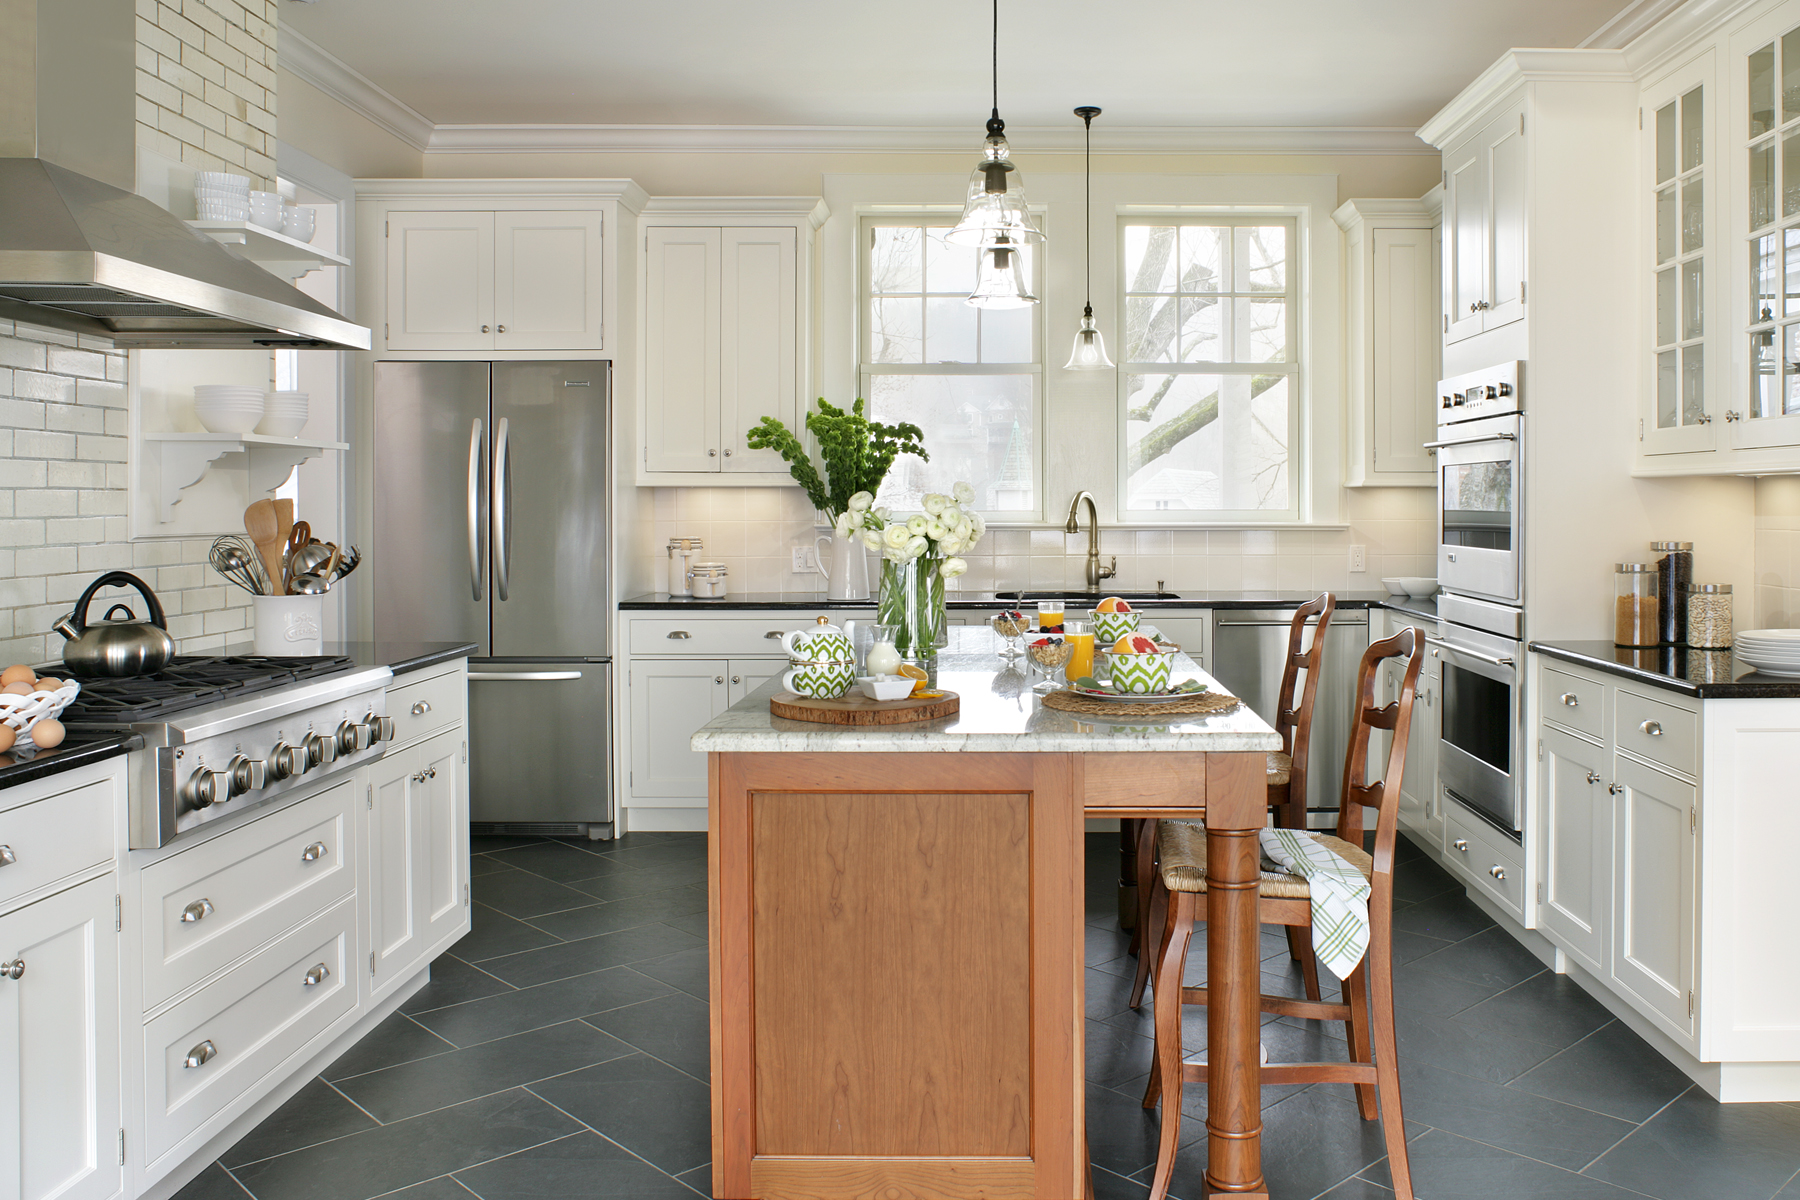 U-shaped kitchen with semi custom Brookhaven cabinets. Cherry island with seating contrasts with the white painted cabinets throughout. Designed by Danielle Florie of Bilotta Kitchens.